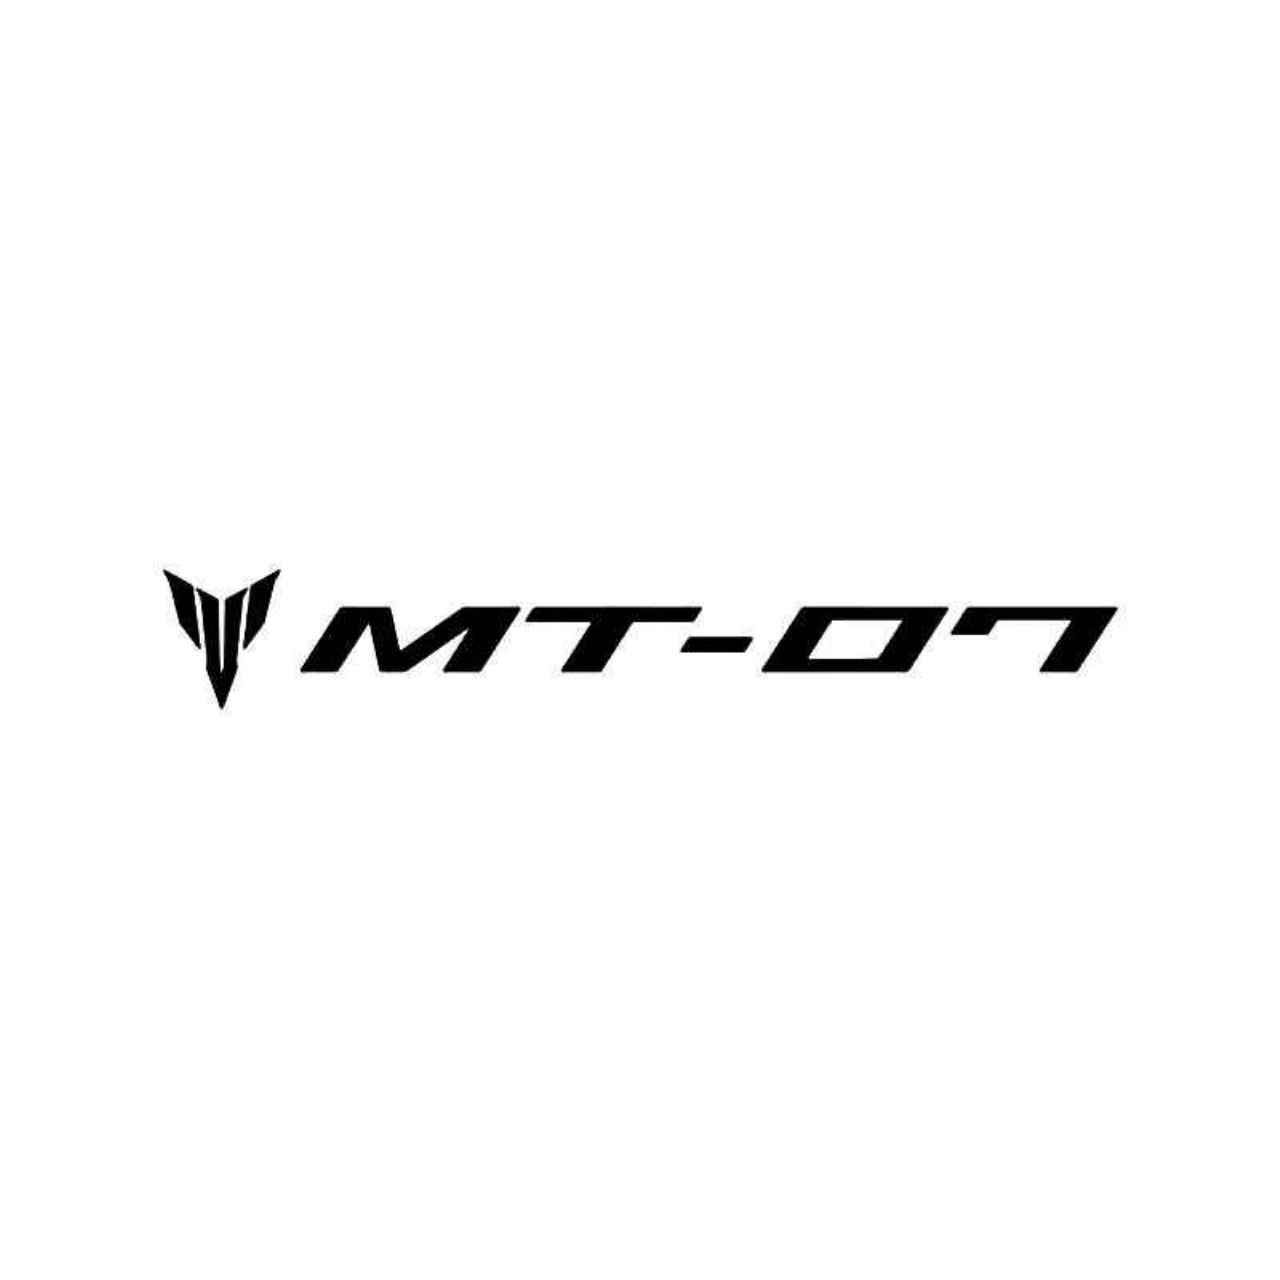 Yamaha mt 07 logo 1 vinyl decal sticker ballzbeatz com